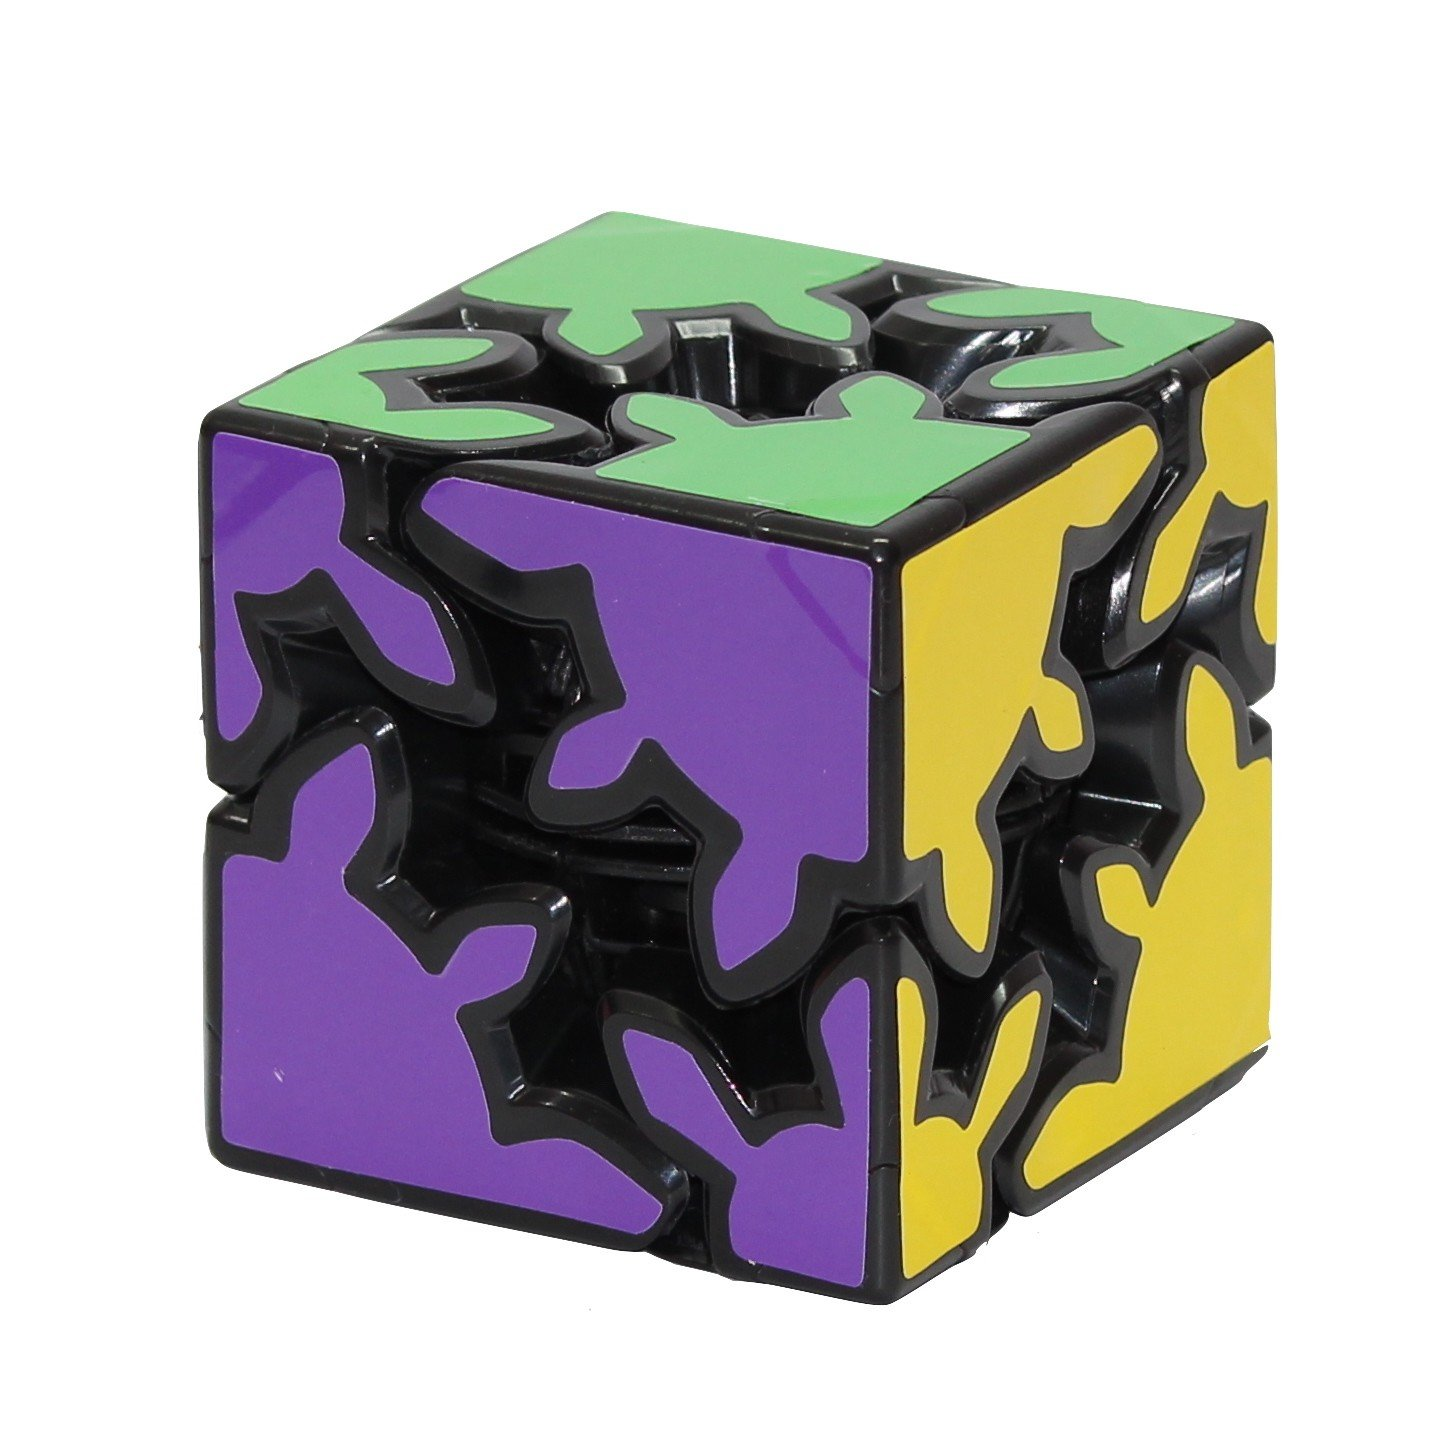 Amazon Price History for Cubelelo Gear Shift 2X2 Magic Cube Puzzle (Black)